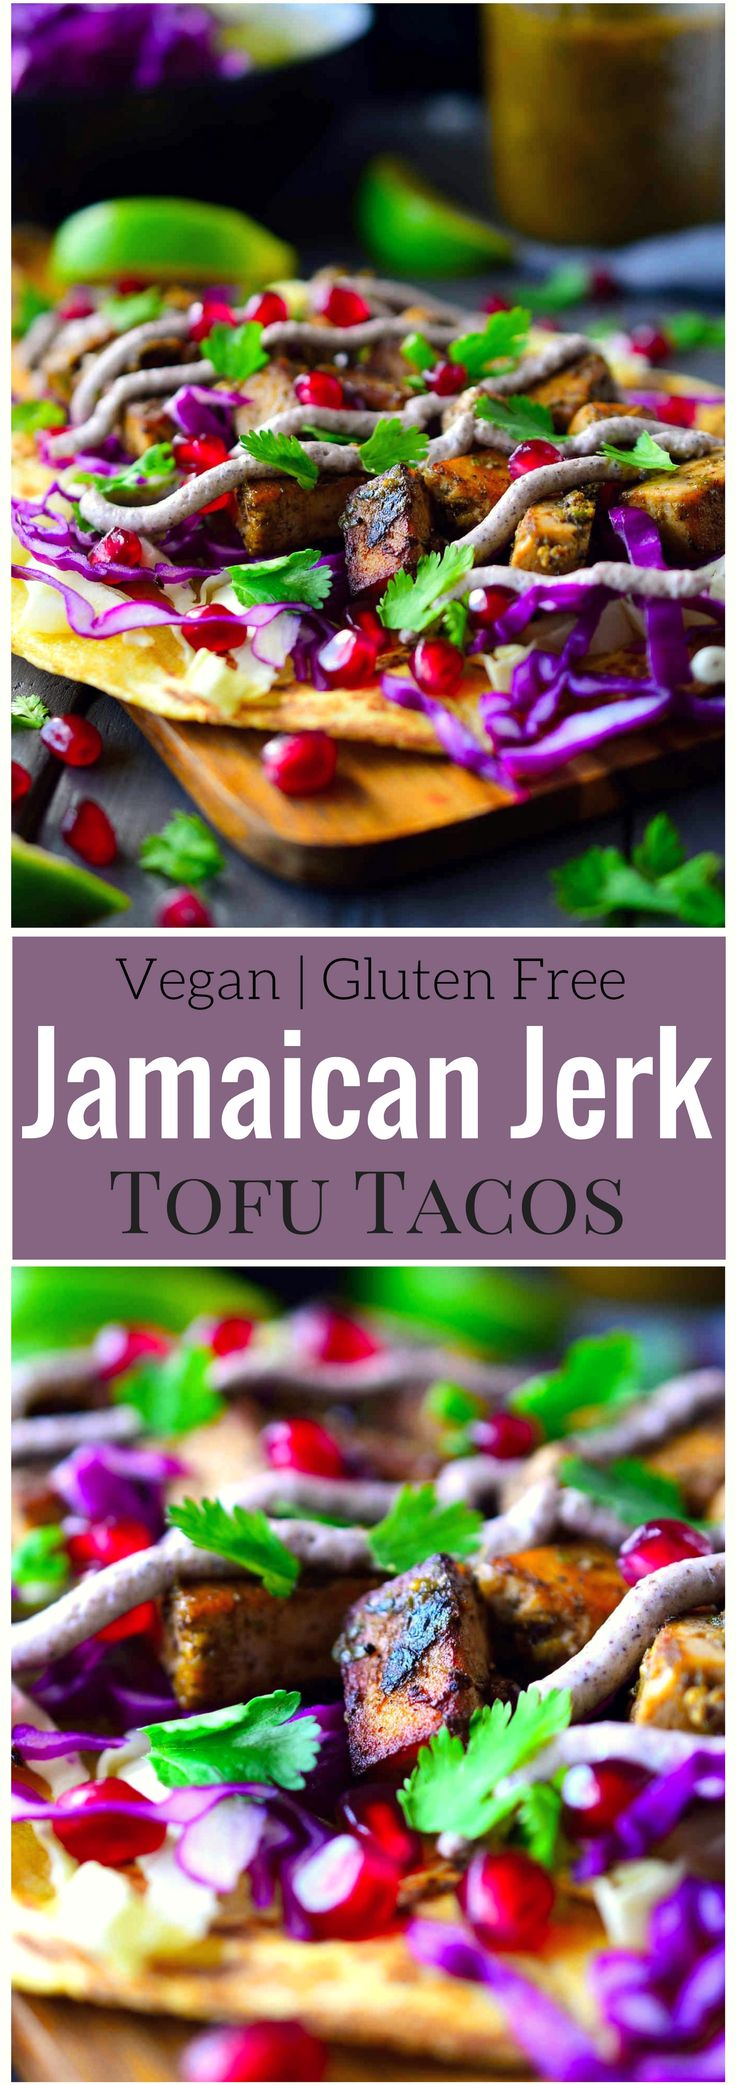 These colourful vegan Jamaican jerk tofu tacos are easy, delicious and bursting with a complex mix of flavours and textures. Simply marinate some tofu in an easy blender wet Jamaican jerk seasoning, fry them up and add your favorite toppings. These vegan tacos are so delicious you won't be able to get enough!